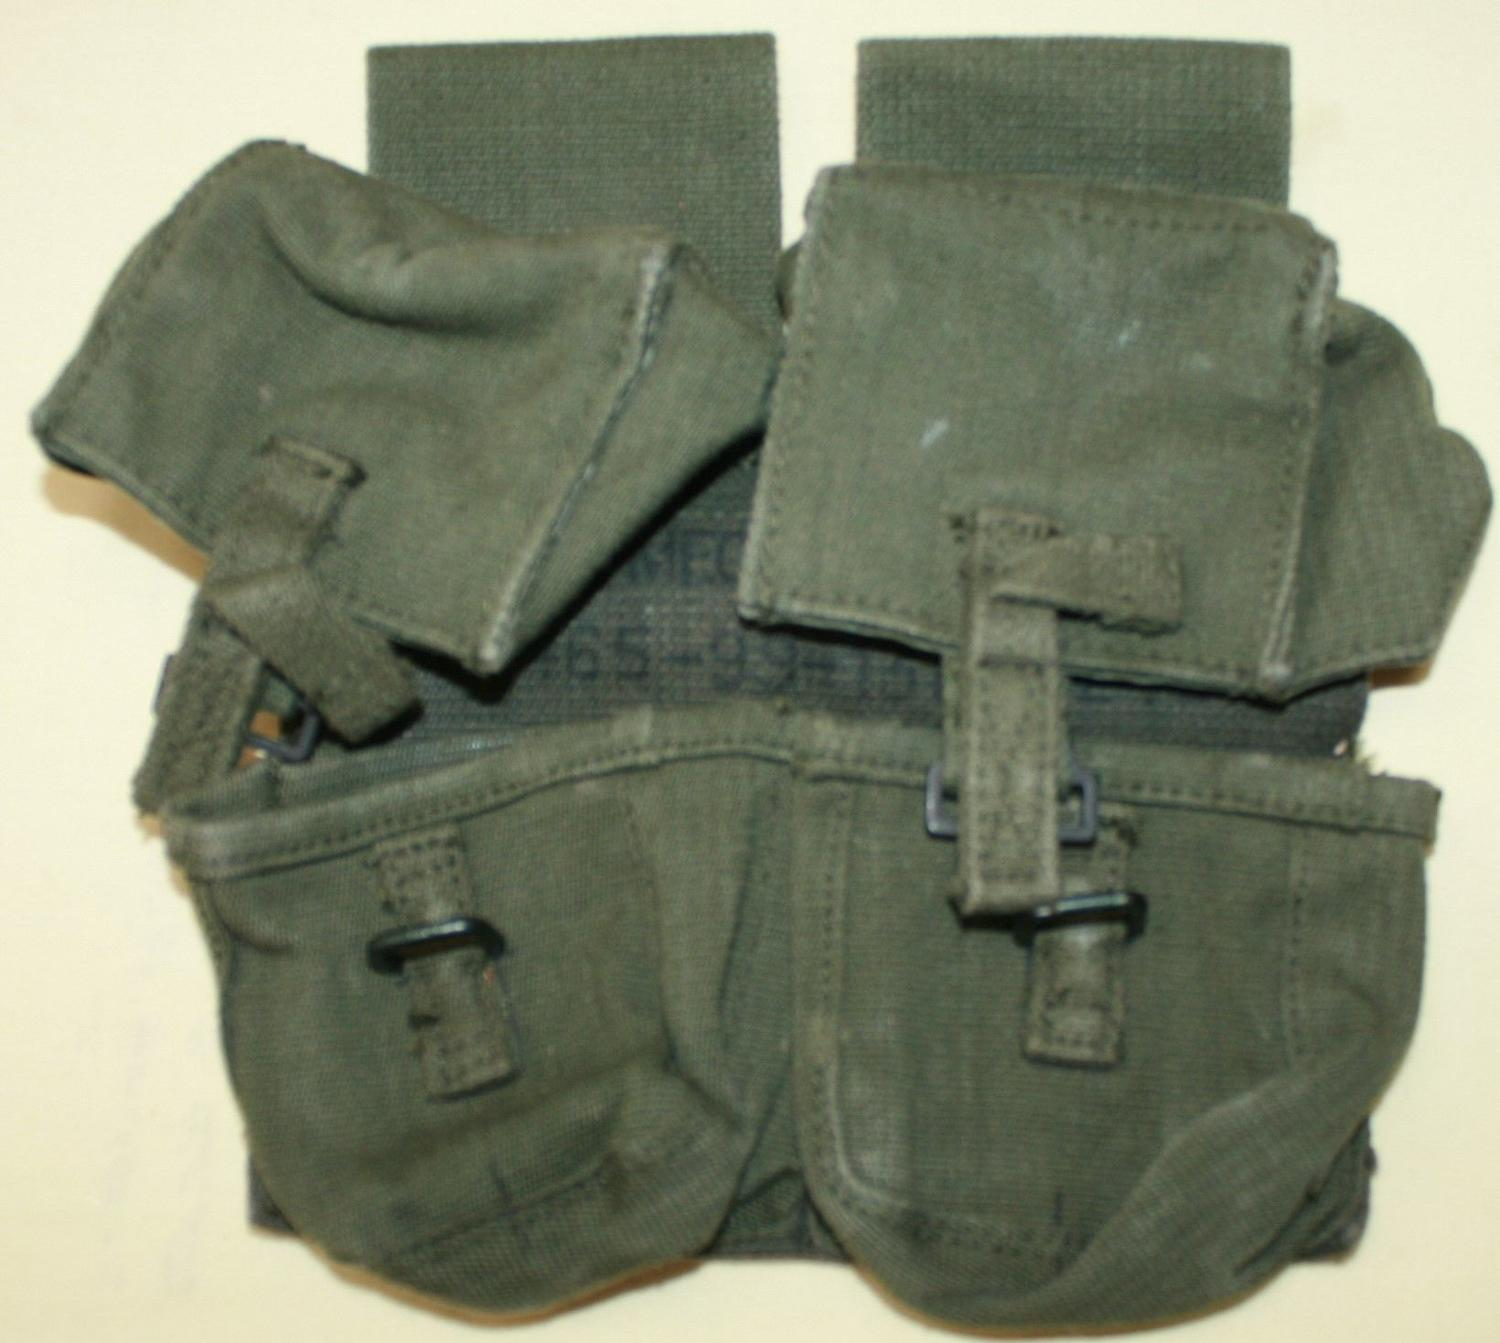 A PAIR OF THE ARMERLIGHT MAGAZINE AMMO POUCHES